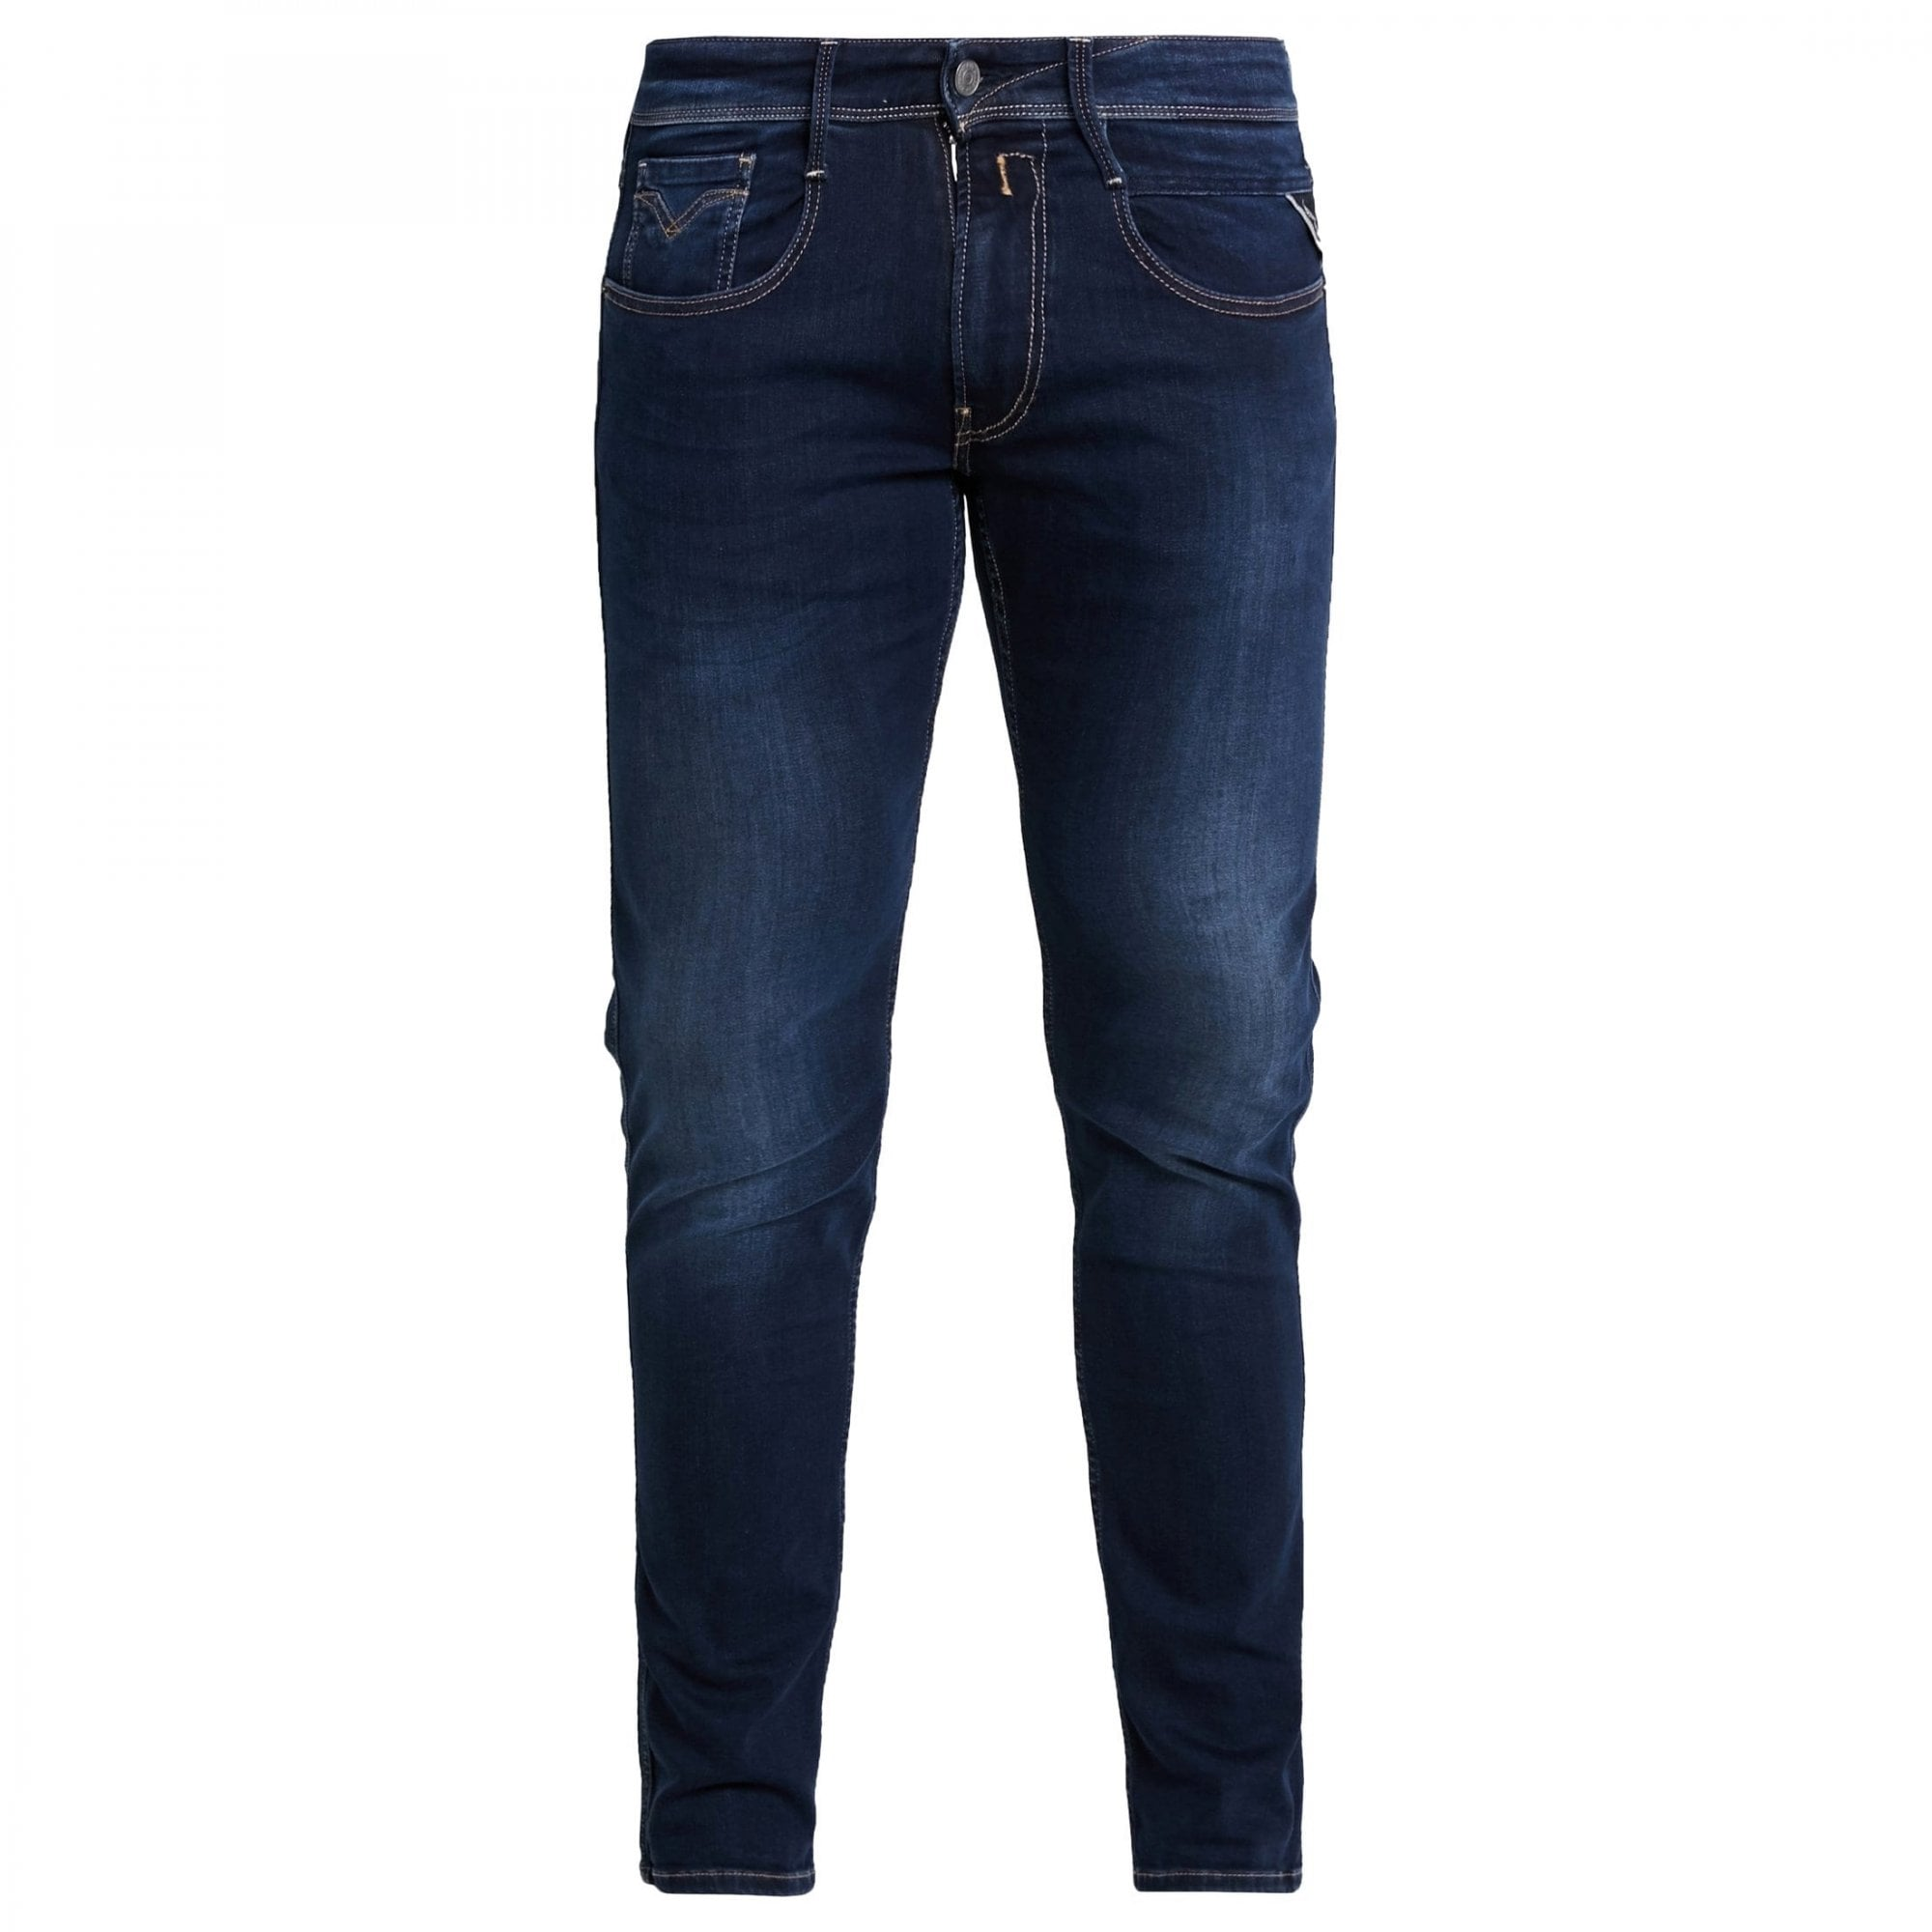 Replay Anbass M914 661 Hyperflex Jeans 007 Dark Blue